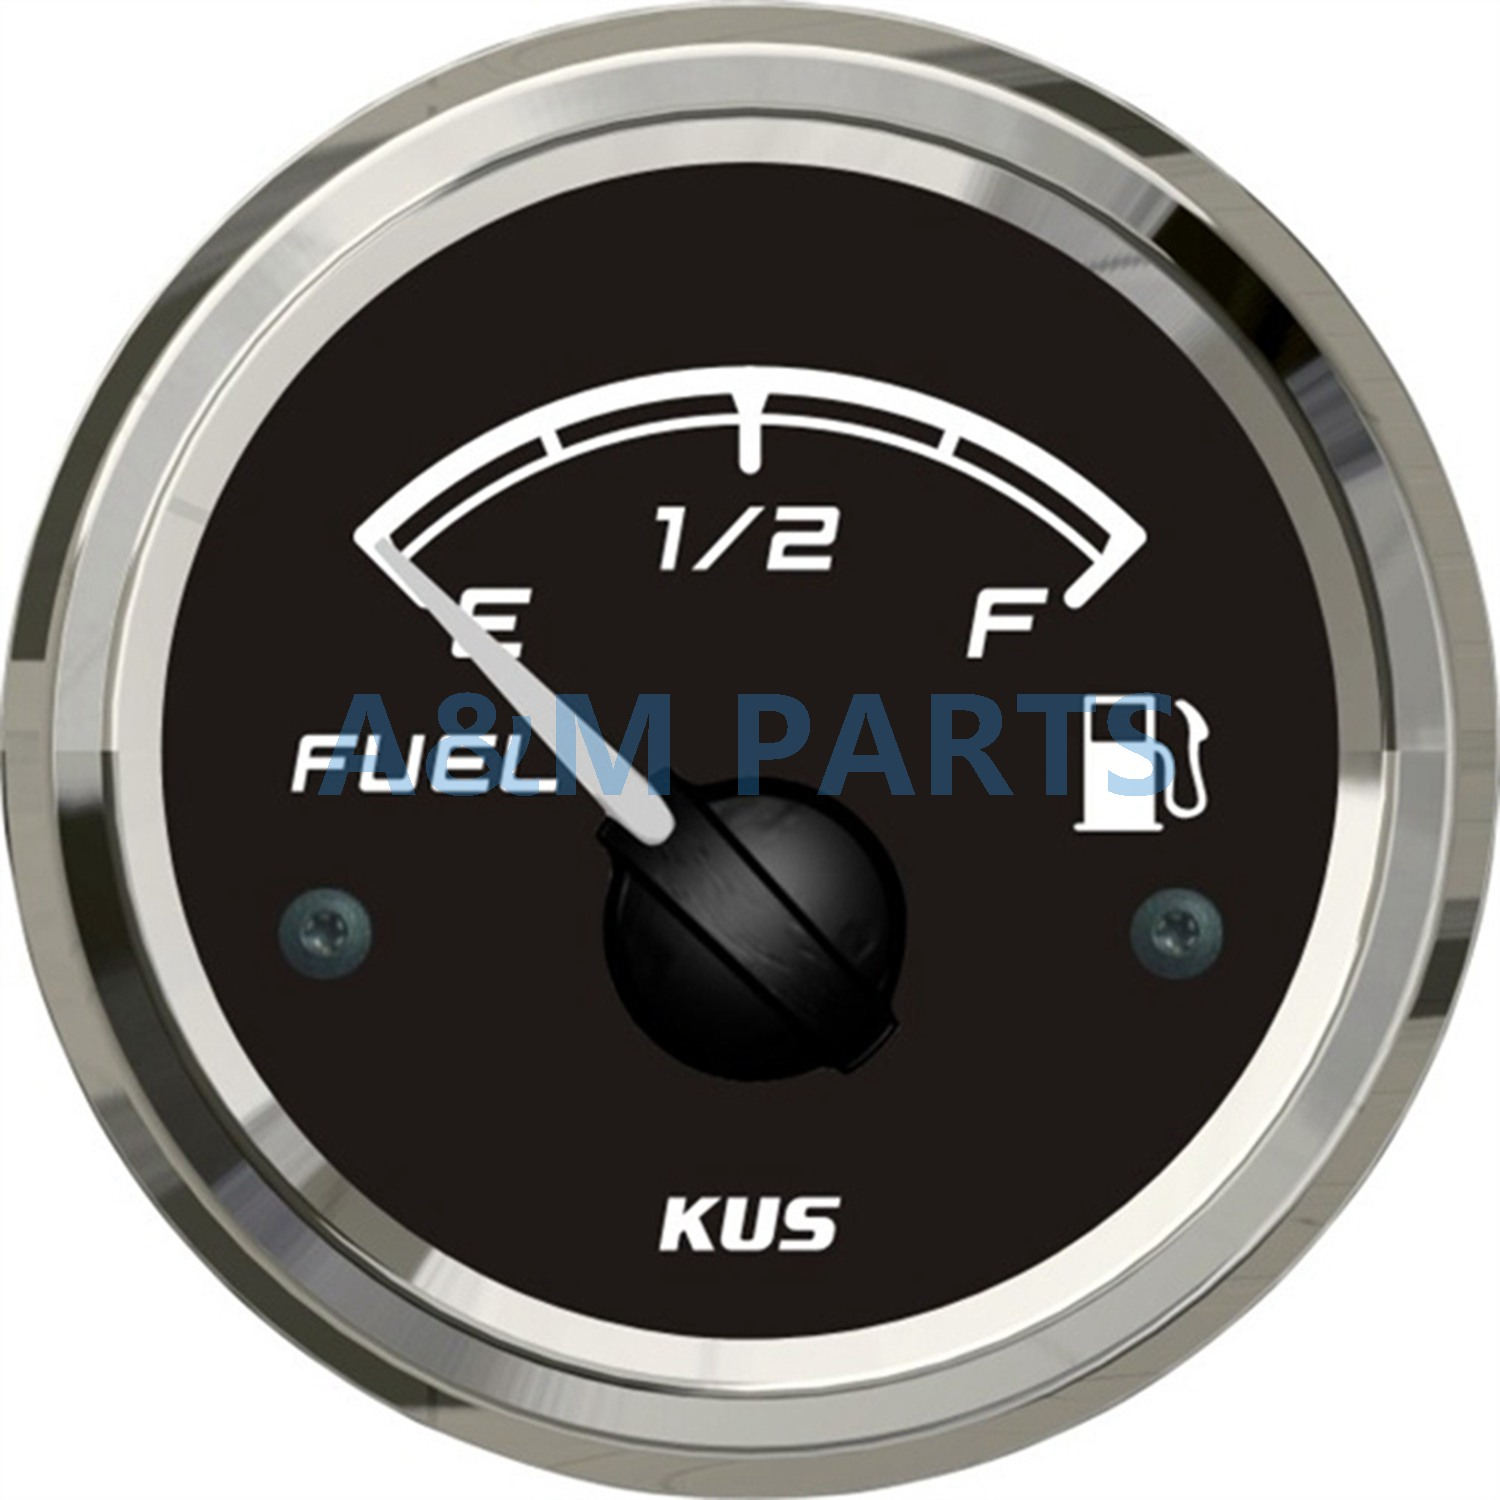 KUS Marine Boat Fuel Level Gauge Truck Car RV Waterproof Fuel Tank Indicator 12V/24V 52mm 0-190ohms датчик kus 12v 24v